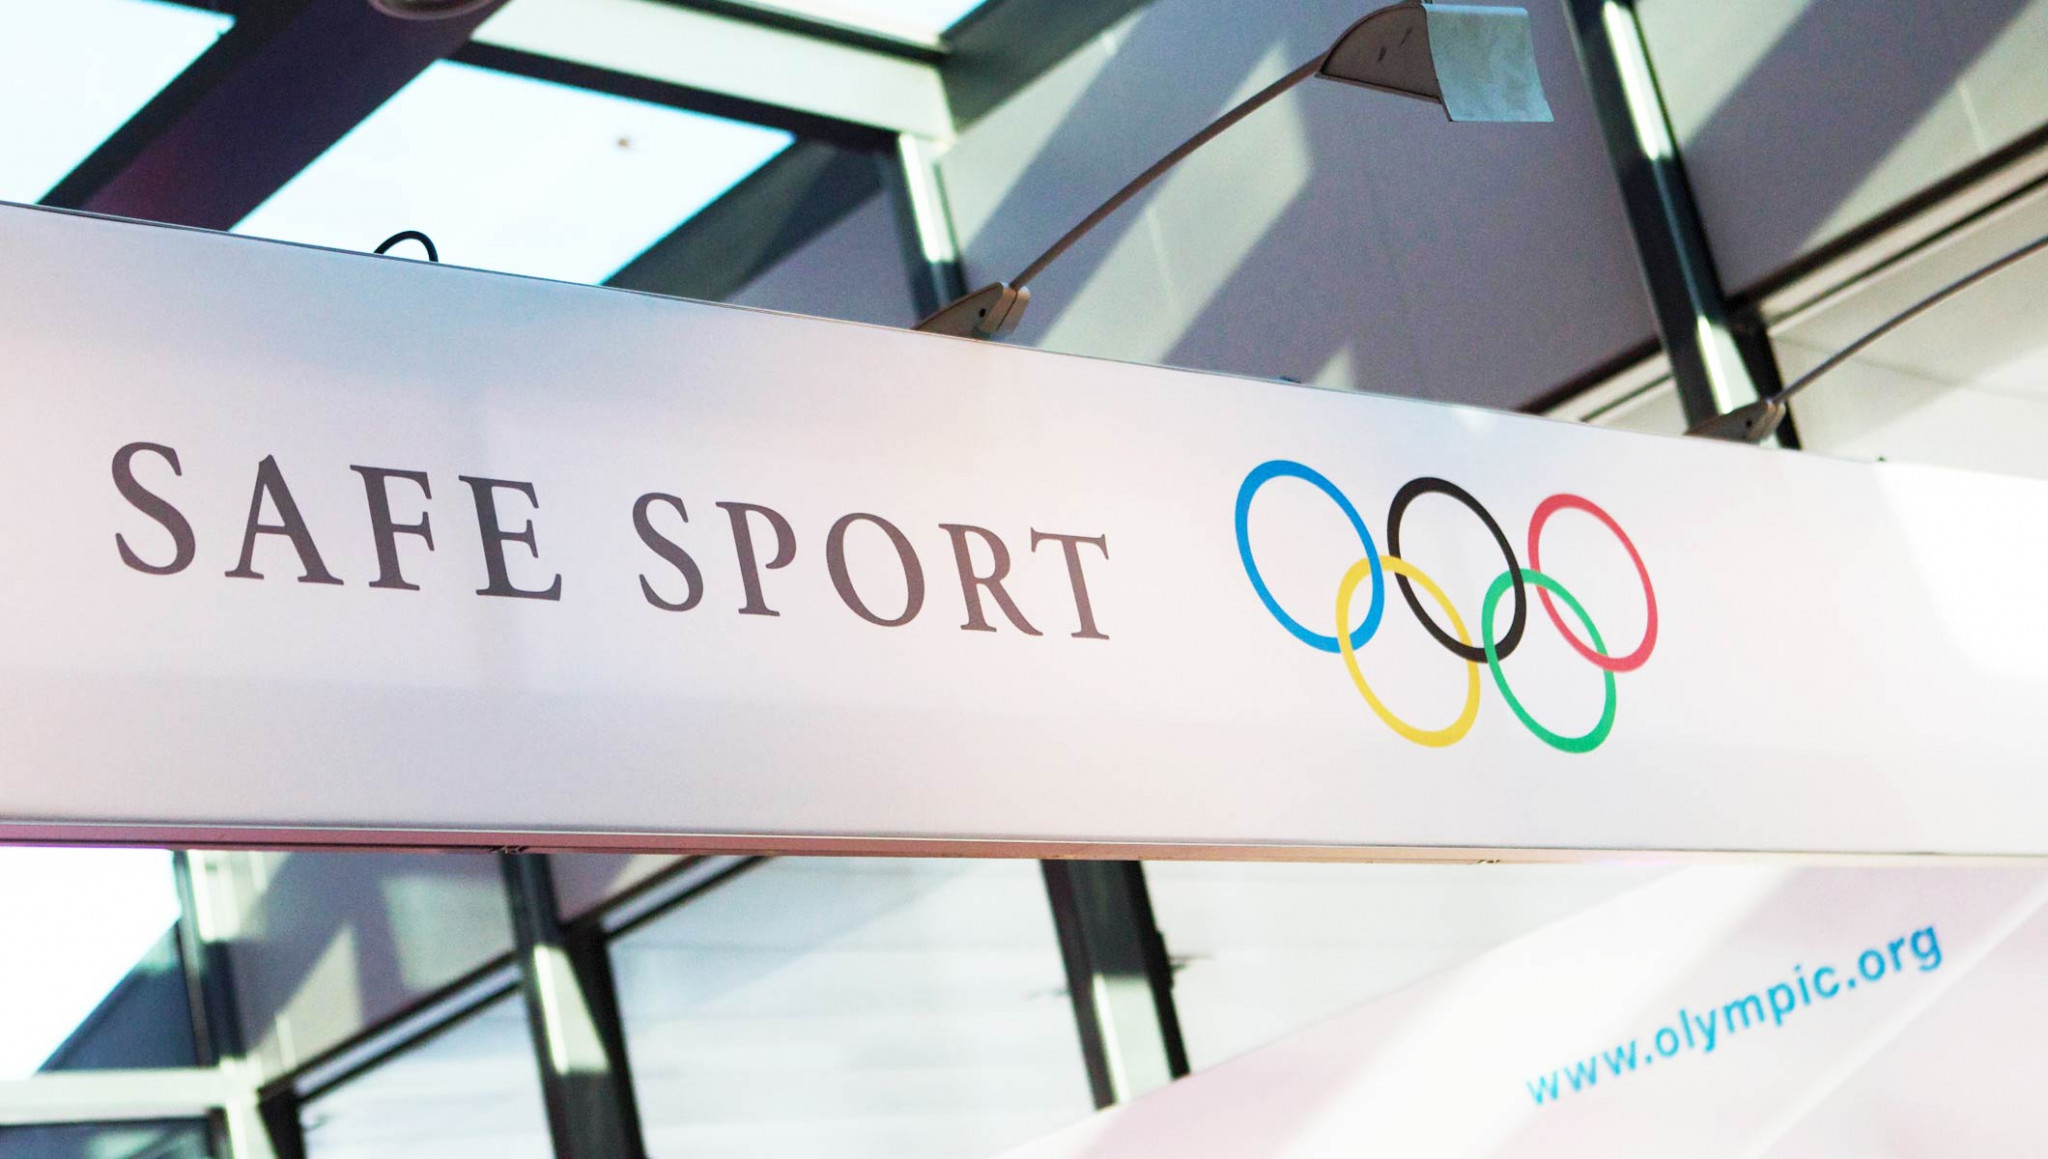 IOC-backed Safer Sport Day held under cloud of abuse scandals